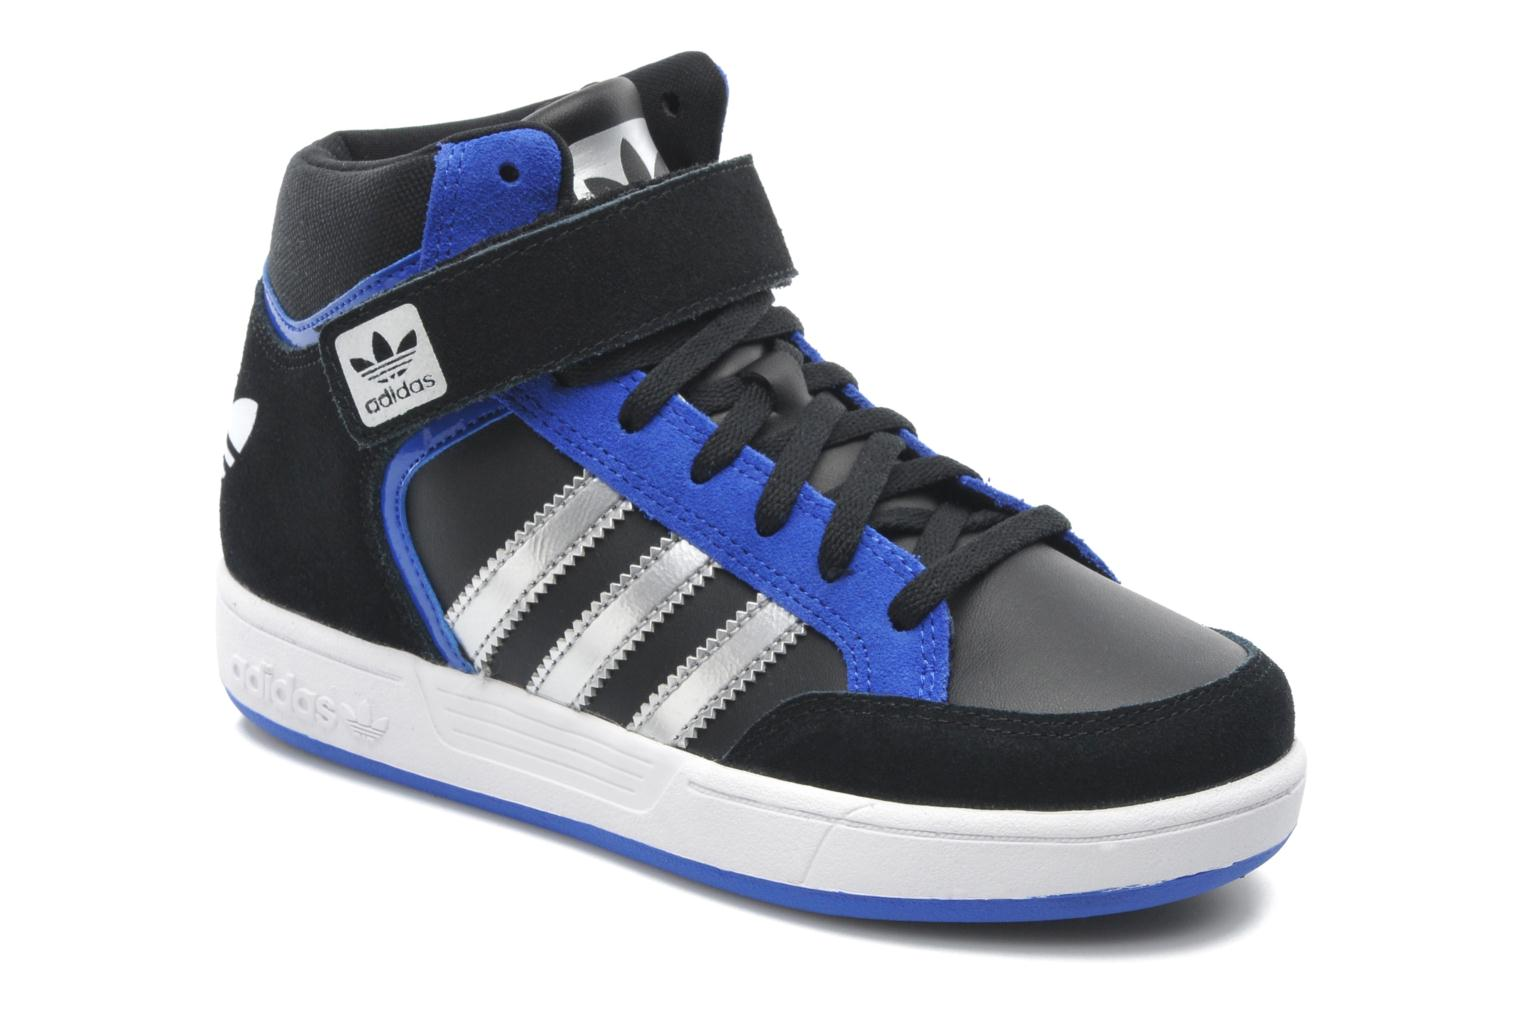 huge selection of 4edbd 36836 Deportivas Adidas Originals Varial Mid J Negro vista de detalle   par